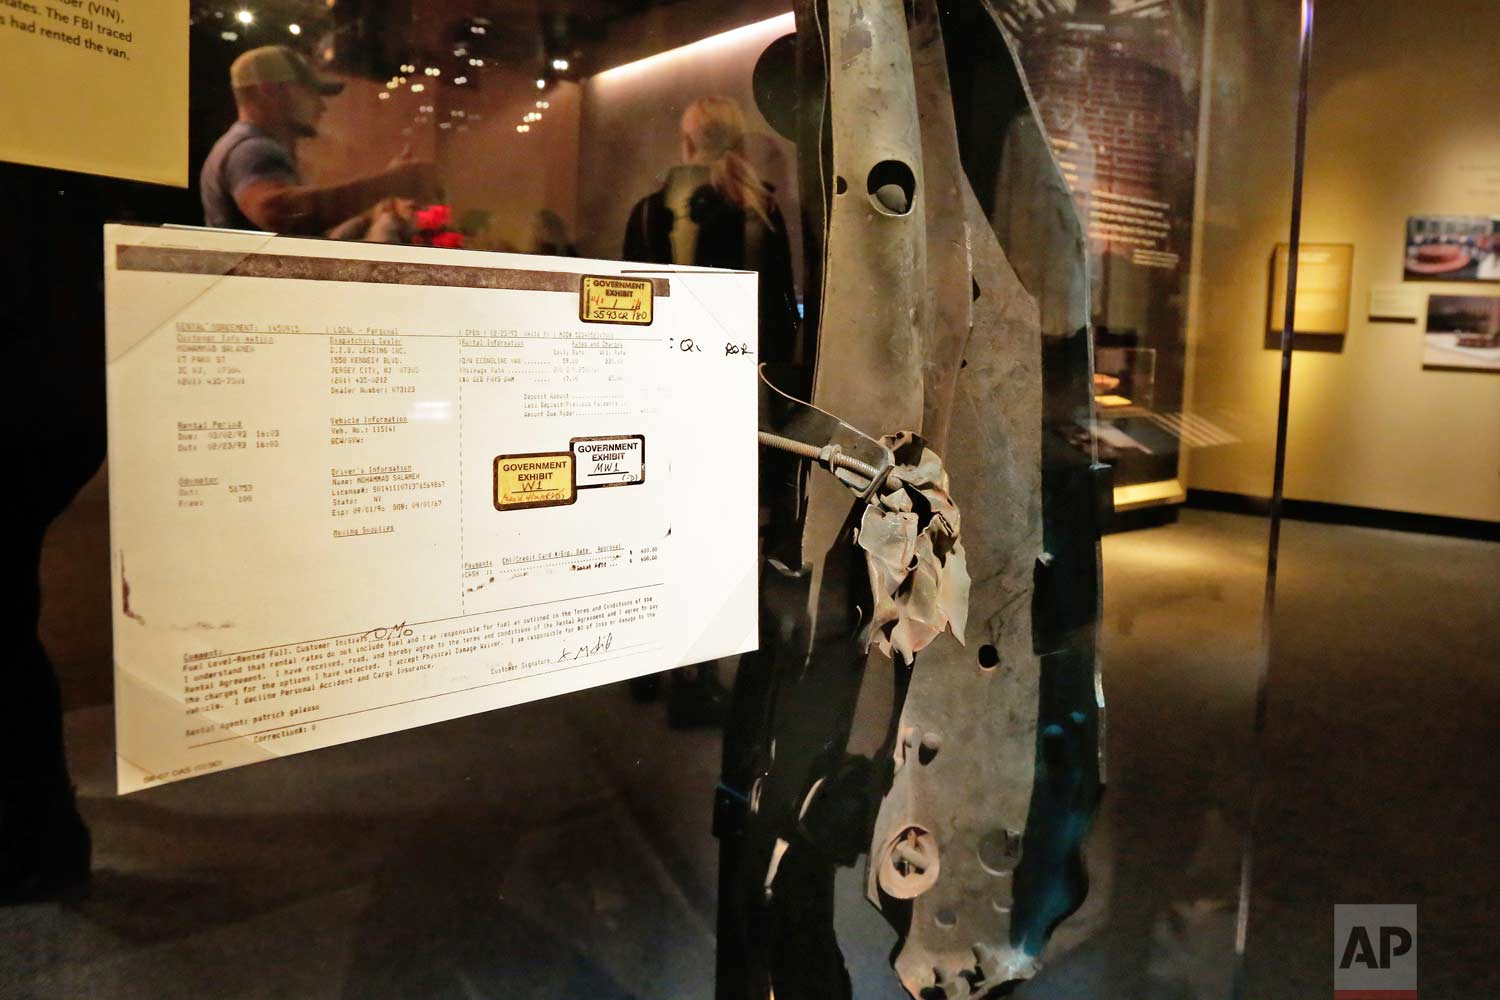 A piece of the rented van, and rental agreement, that began leading investigators to Muslim extremists who sought to punish the United States for its Middle East policies, according to prosecutors, in the Feb. 26, 1993 attack at the World Trade Center, are displayed at the National September 11 Museum, in New York, Friday, Feb. 23, 2018. It was a terror attack that foreshadowed Sept. 11: the deadly World Trade Center bombing that happened 25 years ago Monday. (AP Photo/Richard Drew)